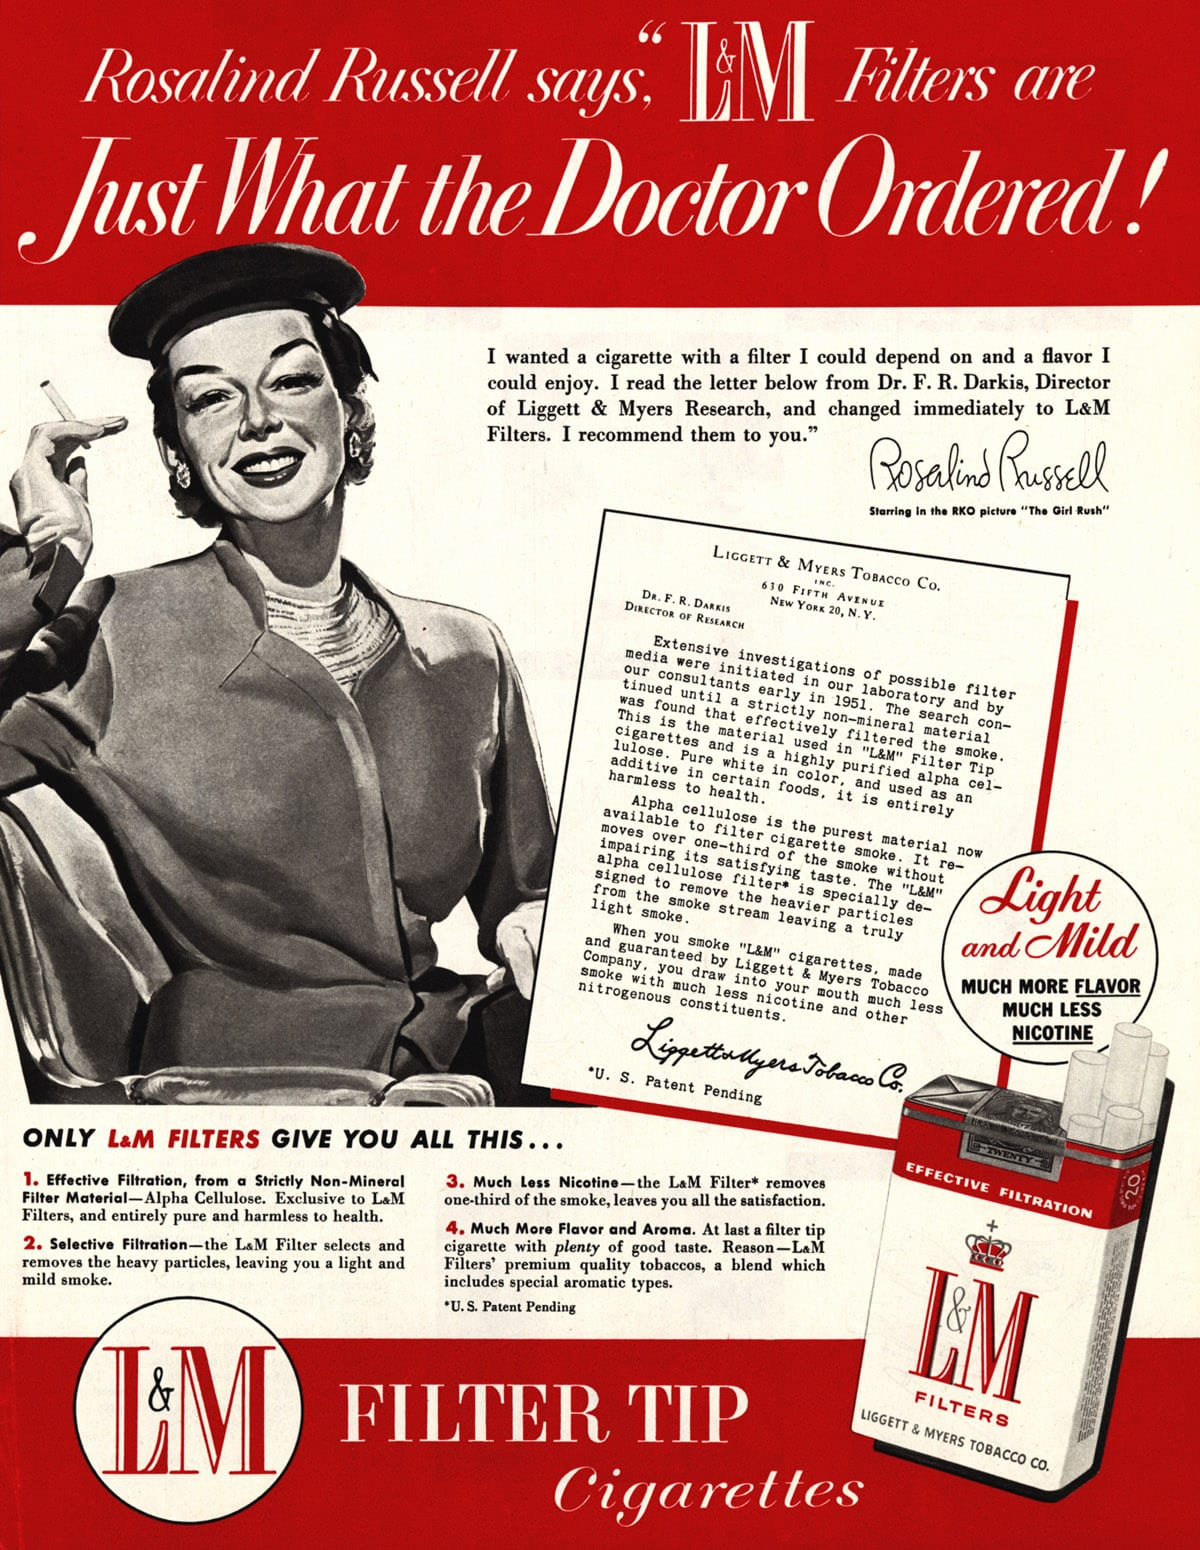 cigarette advertisements in the 1950s essay Introduction of cigarette advertisements targeting burns, 1994 women, including the reach for a lucky instead of a health advocacy center sweet campaign 1986 1929 beginning of the great depression in the united states 1941-45 united states involvement in world war ii 1950 publication of retrospective.